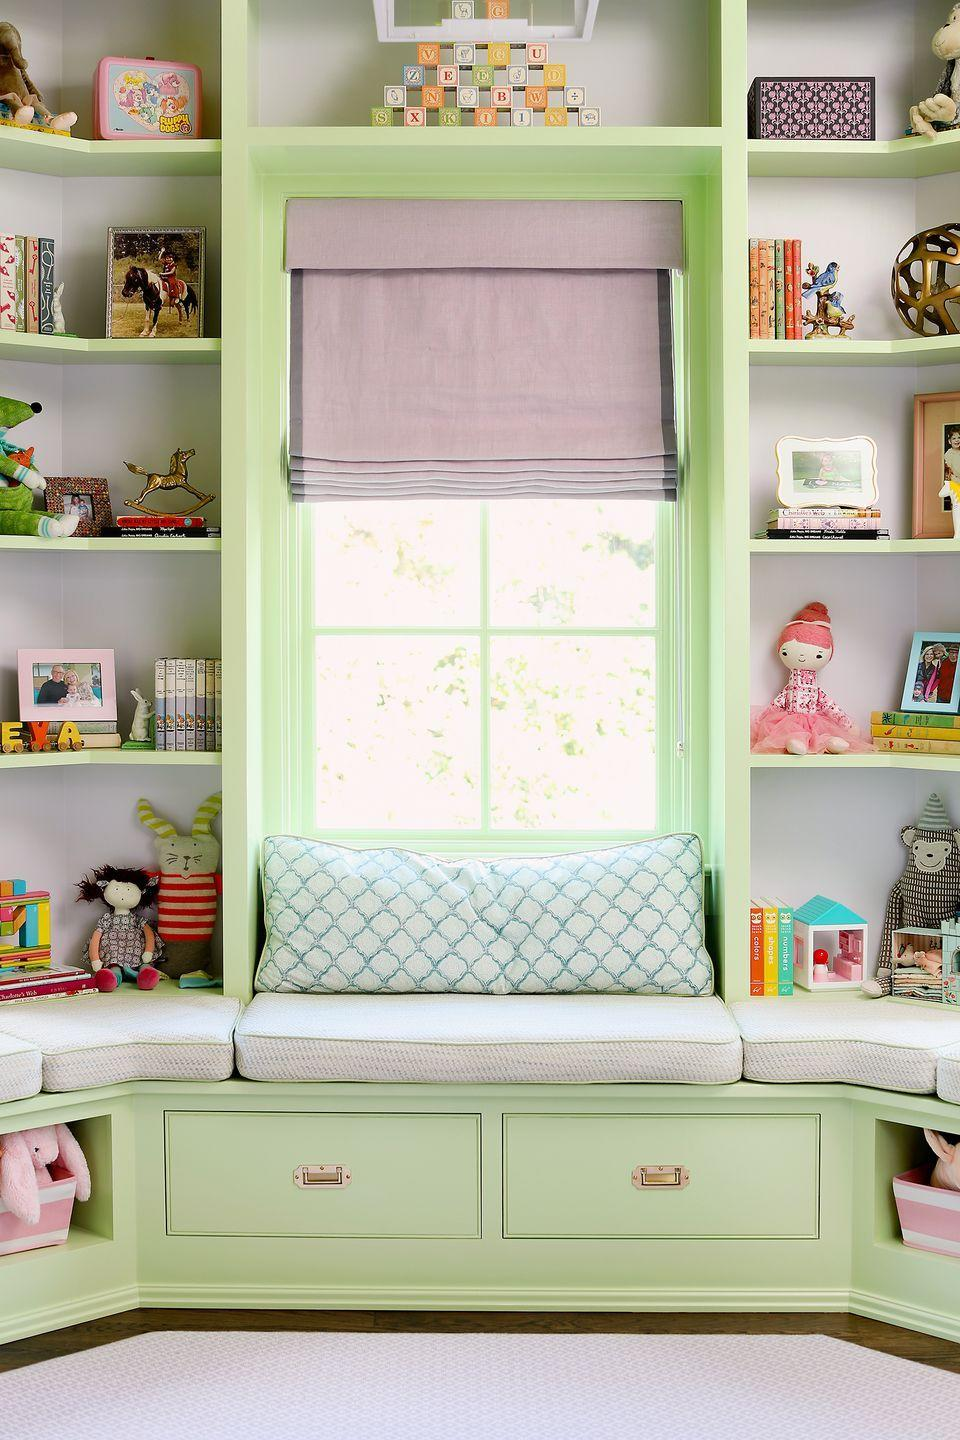 """<p>MA Allen Interiors' client wanted a room that would empower her two-year-old grandchild """"to grow and pursue anything under the sun,"""" so the North Carolina designer built in magical surprises to promote discovery and wonder. Basically it's a dream play space. To keep toys out the way, open shelves with baskets come in handy. For a similar effect, create smart seating and storage in your kids' playroom by turning two bookcases on their sides and adding cushions on top.</p>"""